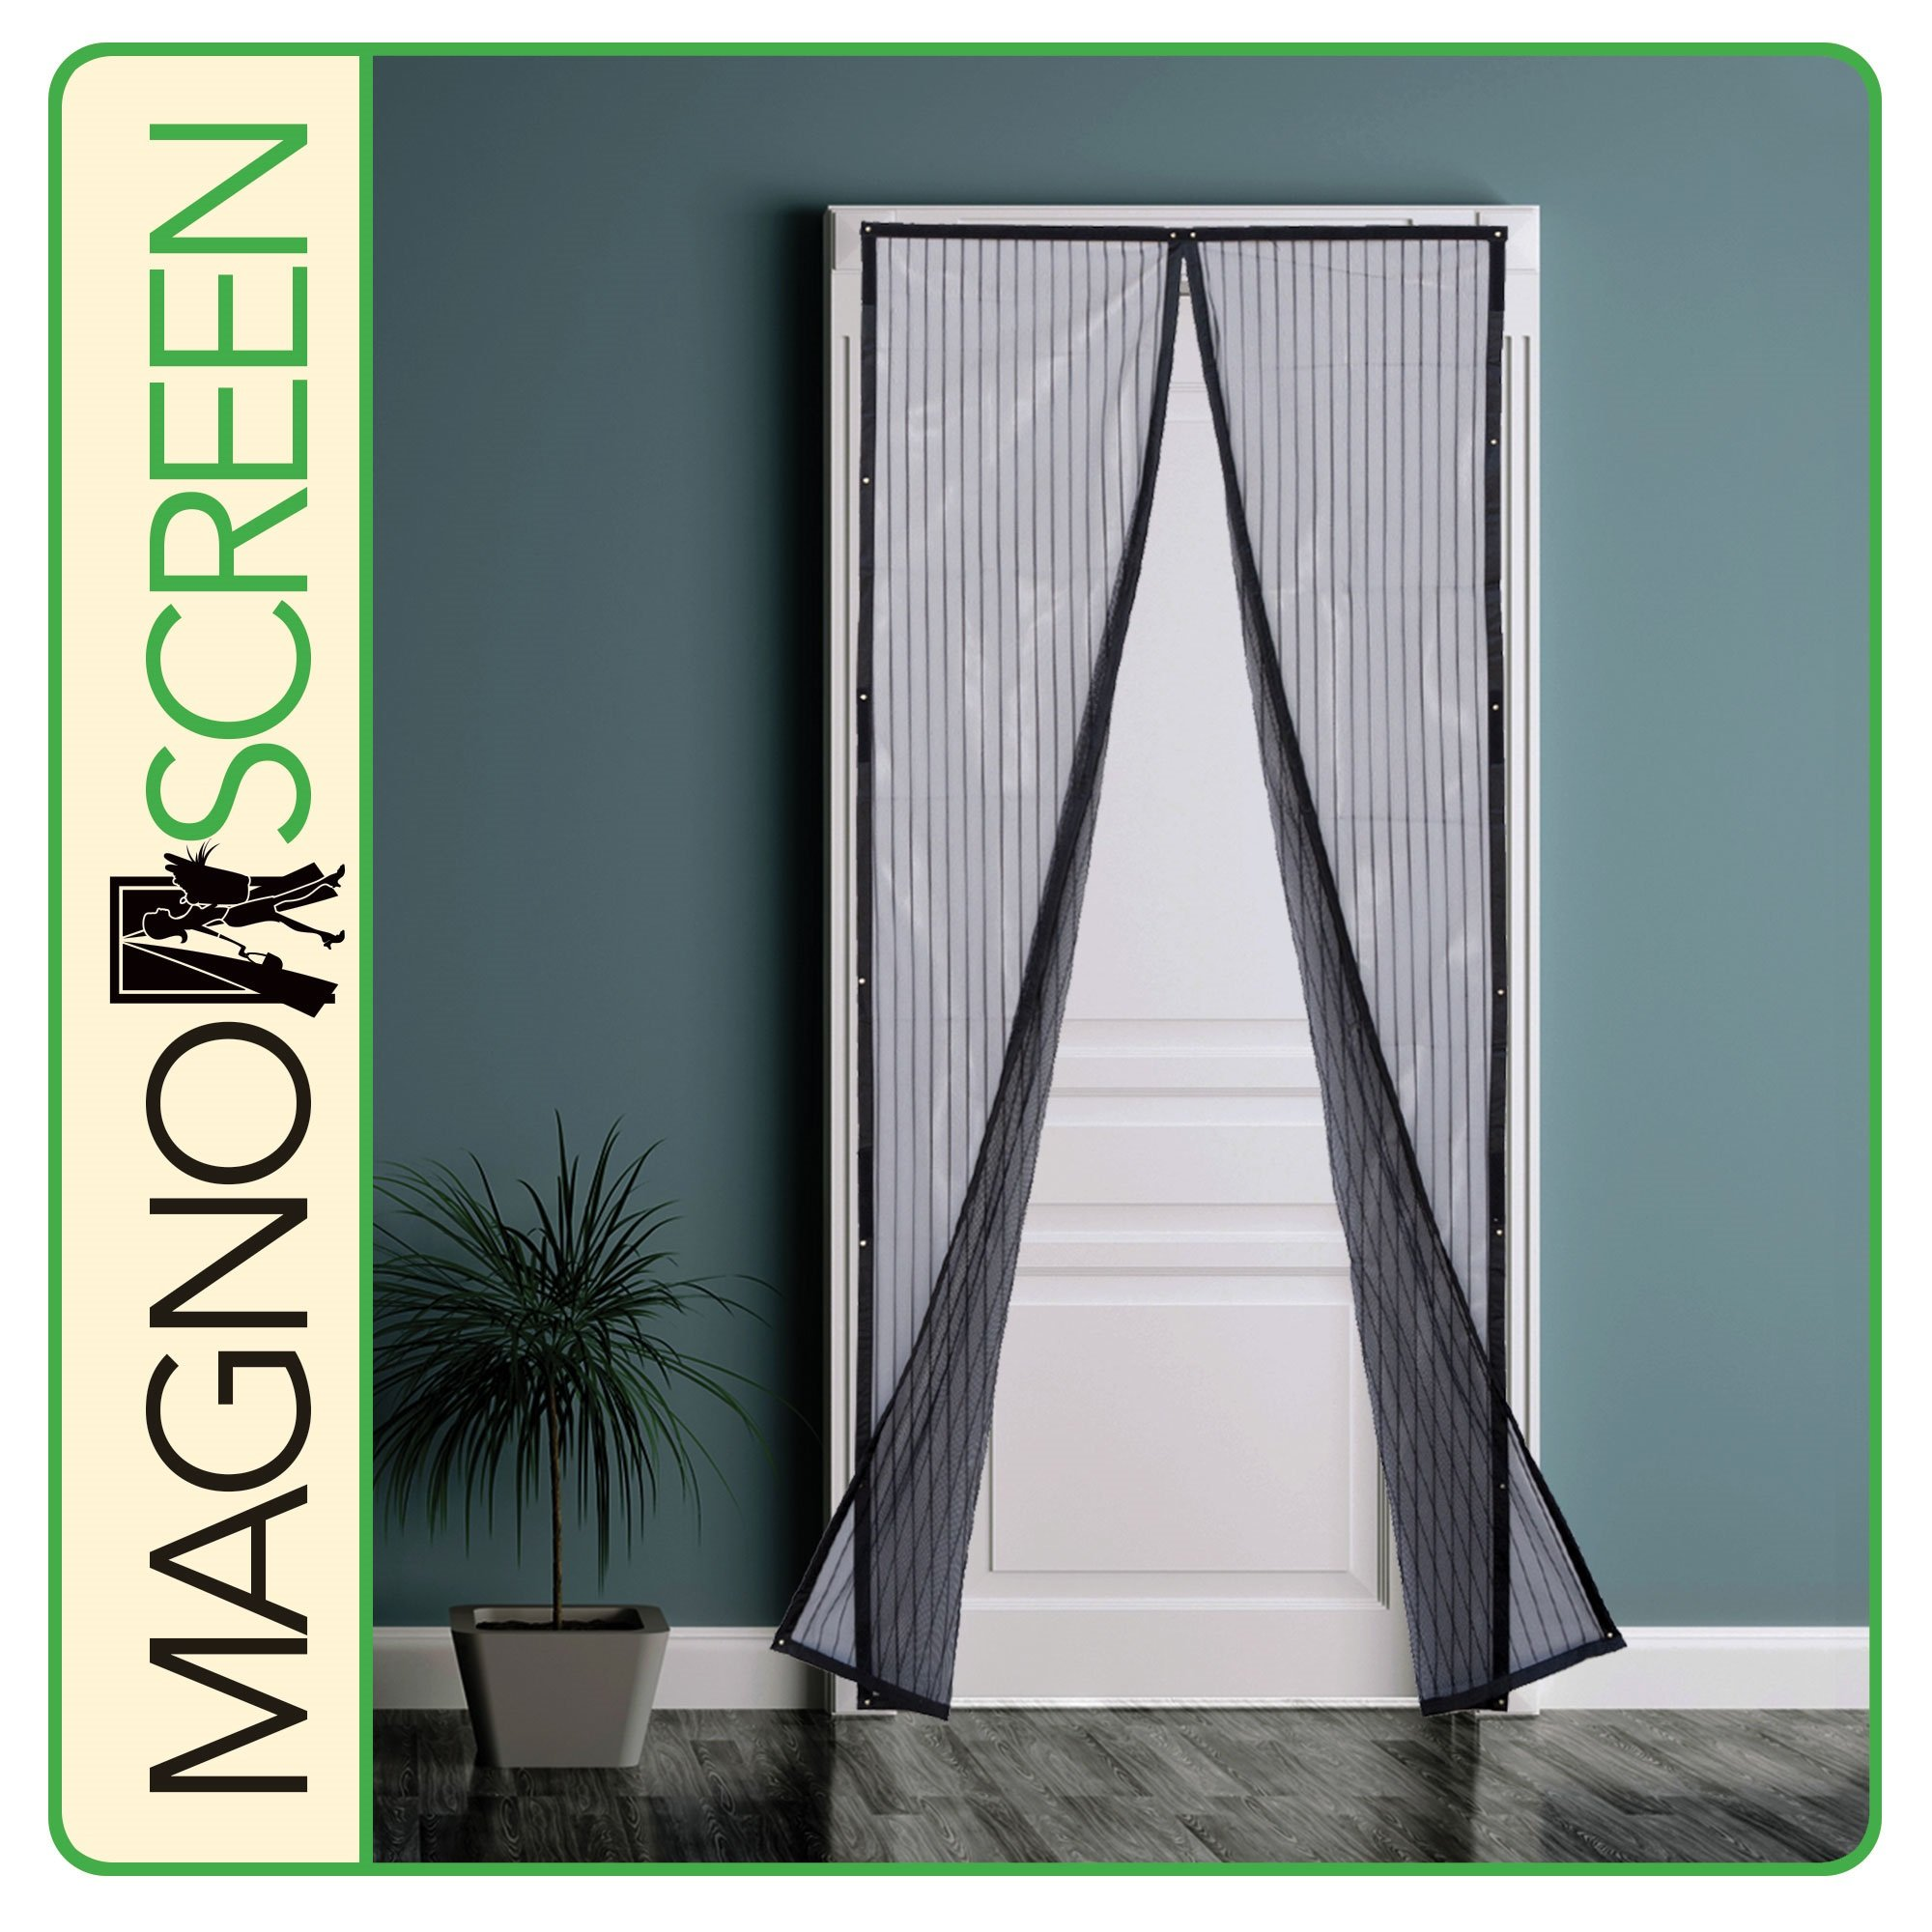 Park Ridge MSD3280 Magnetic Screen Door, 32x80'', Black